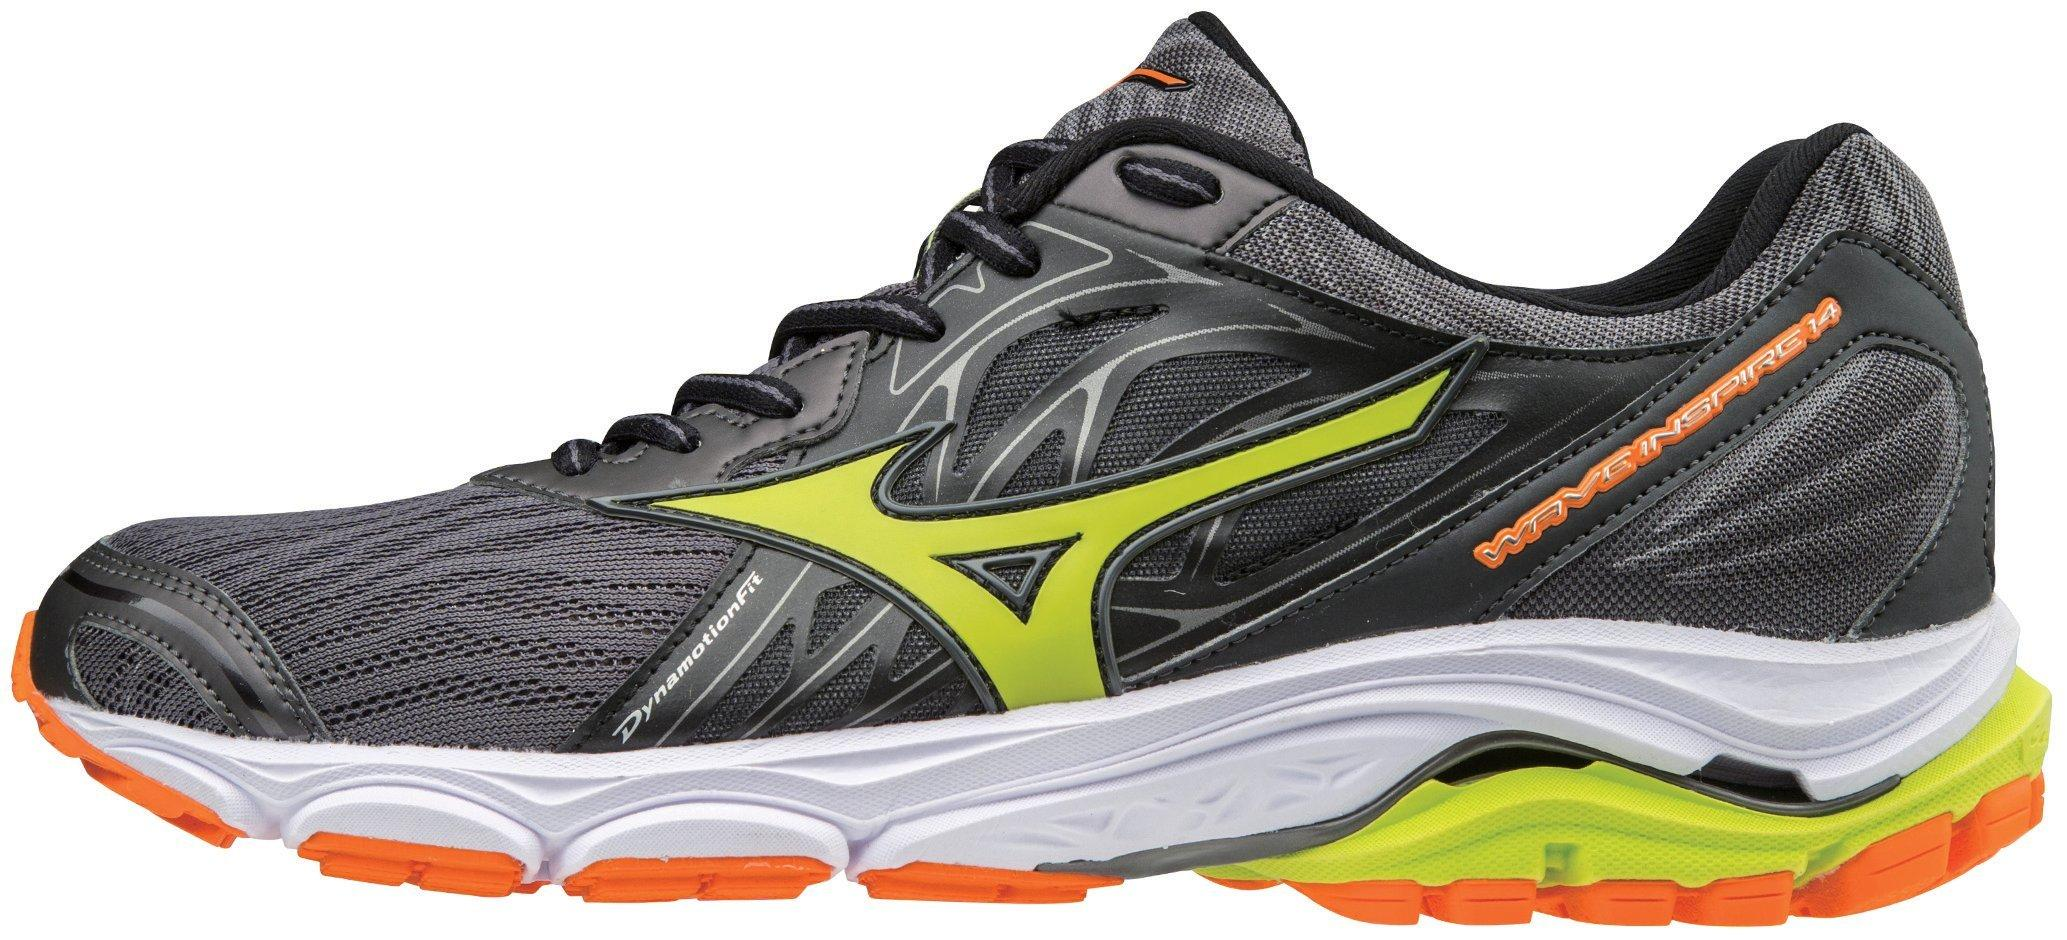 mizuno wave rider 21 ebay top